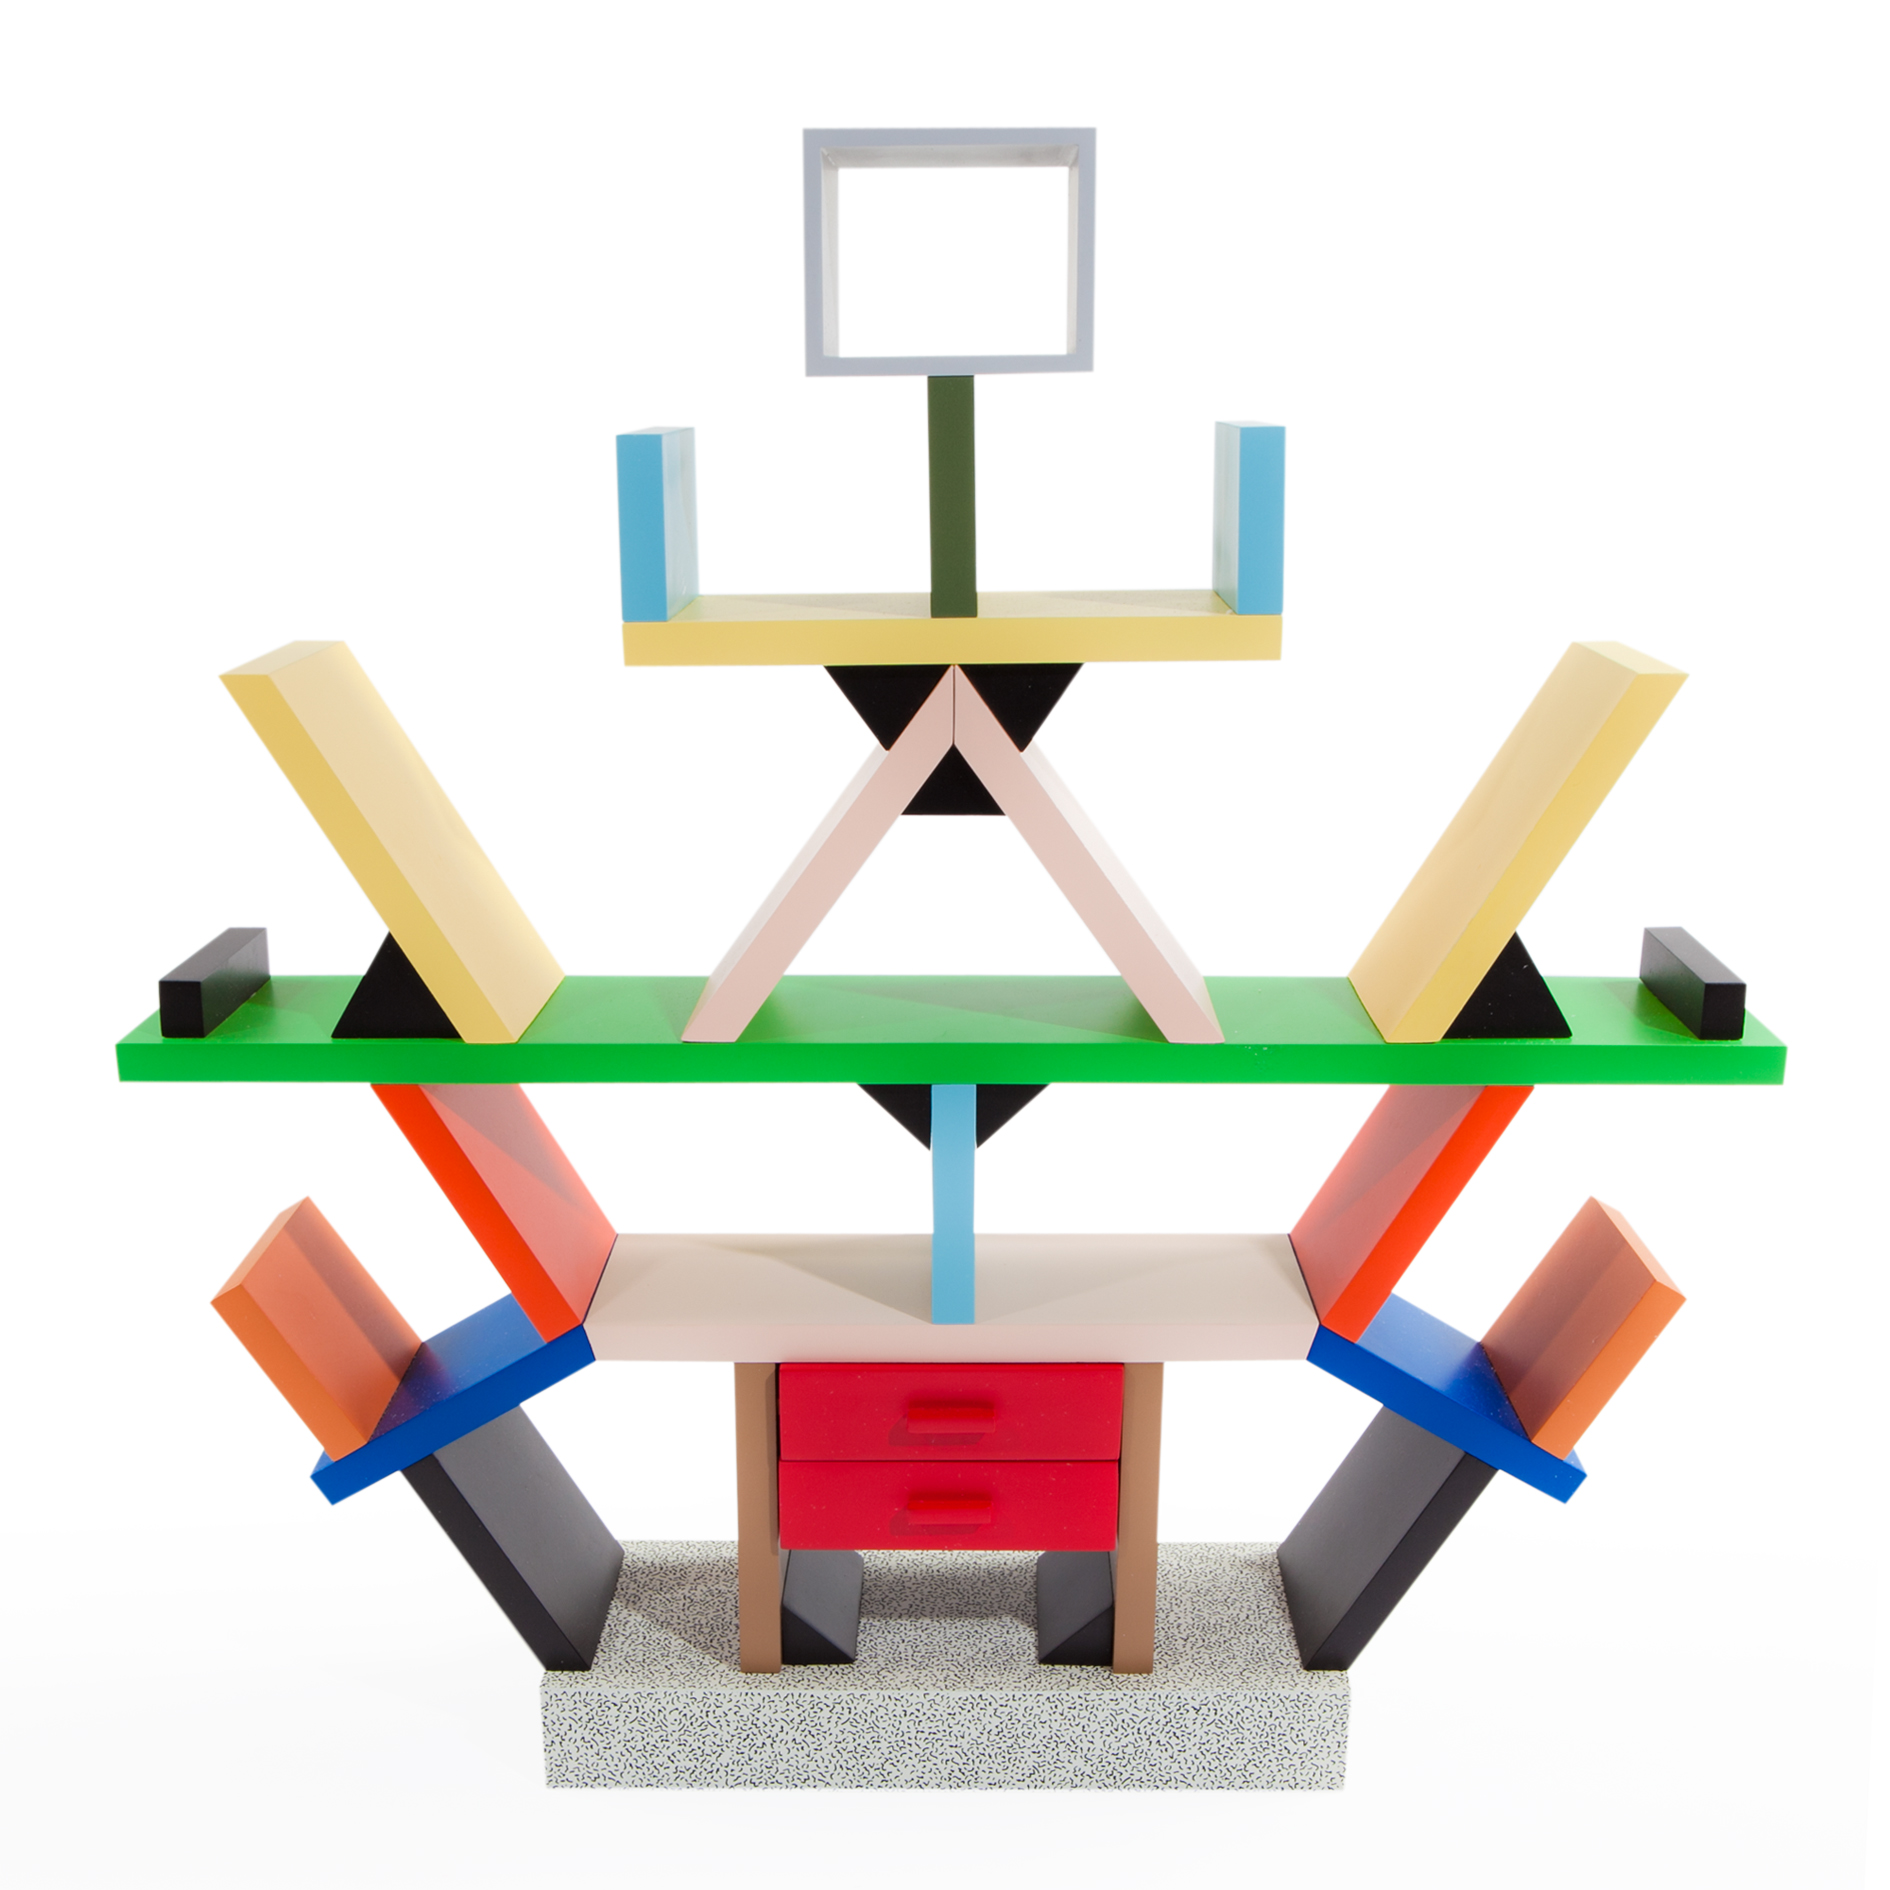 Design Alessandro Mendini.The Seventies And Eighties The Alchimia And Memphis